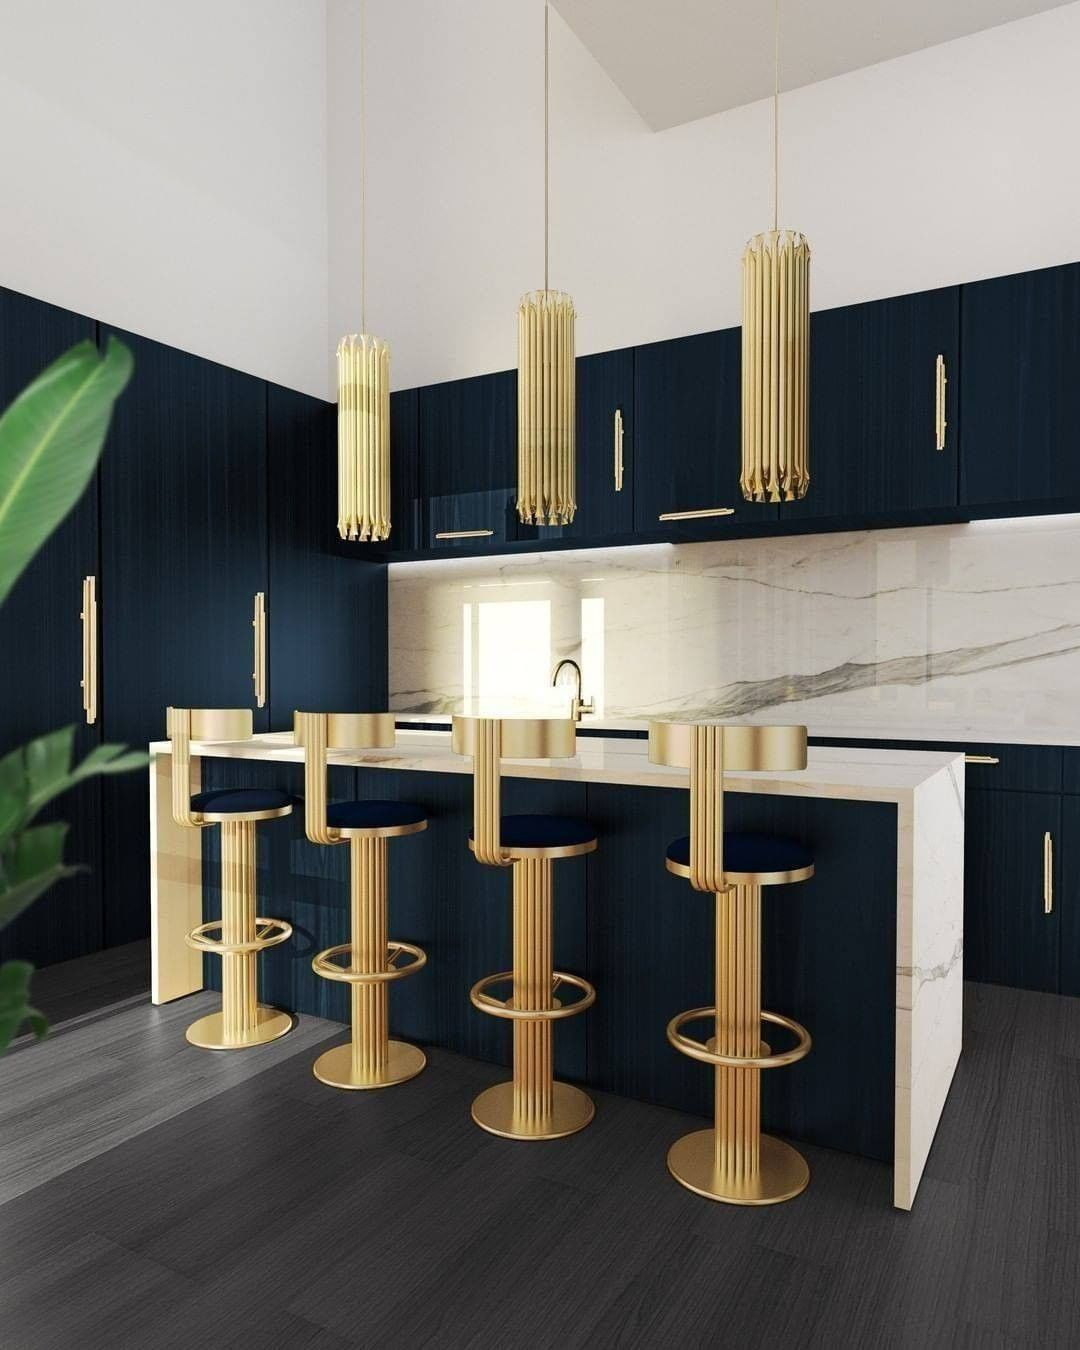 hardware trends Hardware Trends To Uplift Any Room Décor 138484714 3993160557395427 488047461899300038 n